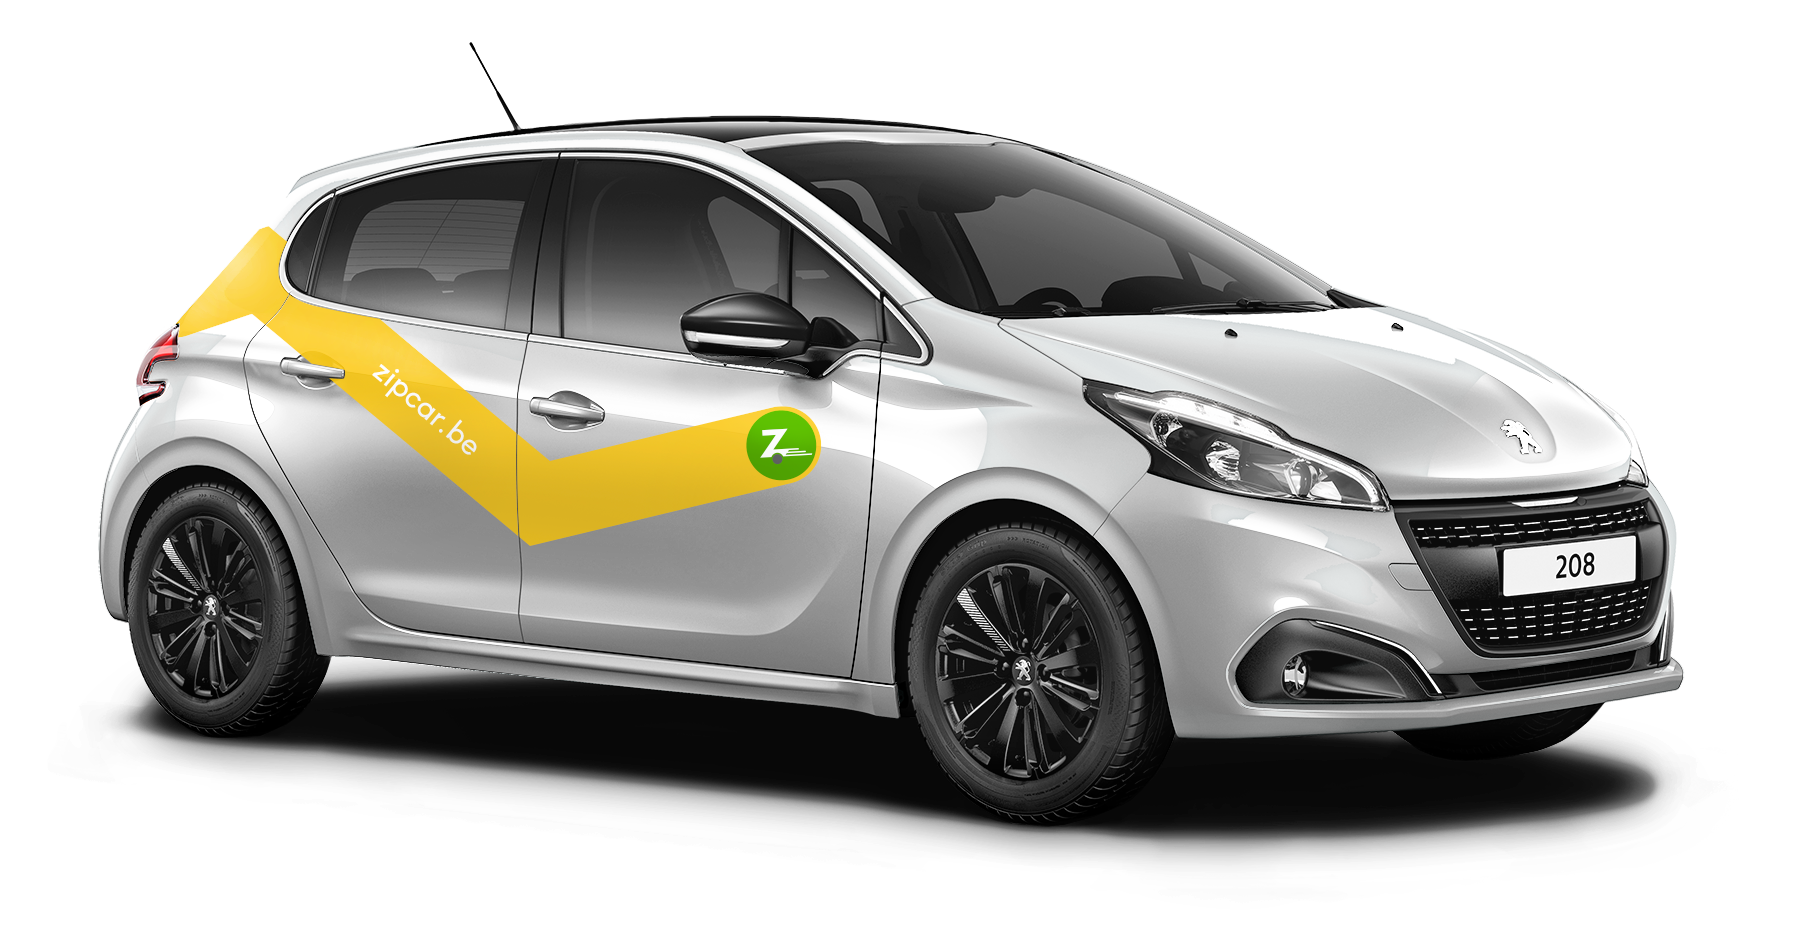 """Picture for choice """"Zipcar"""""""